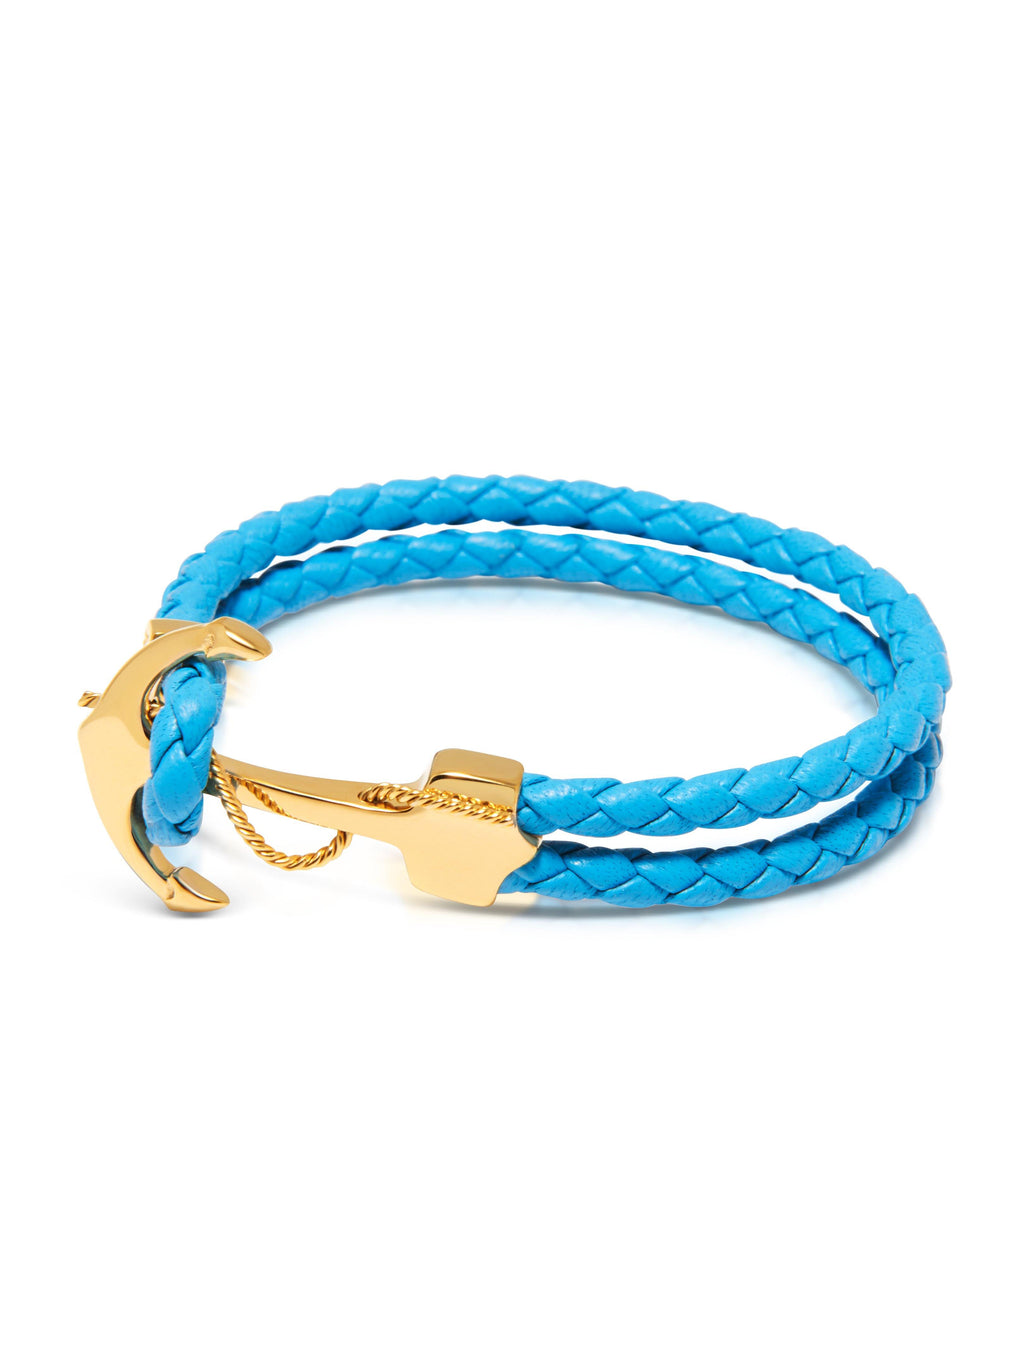 Men's Light Blue Leather Bracelet with Gold Anchor